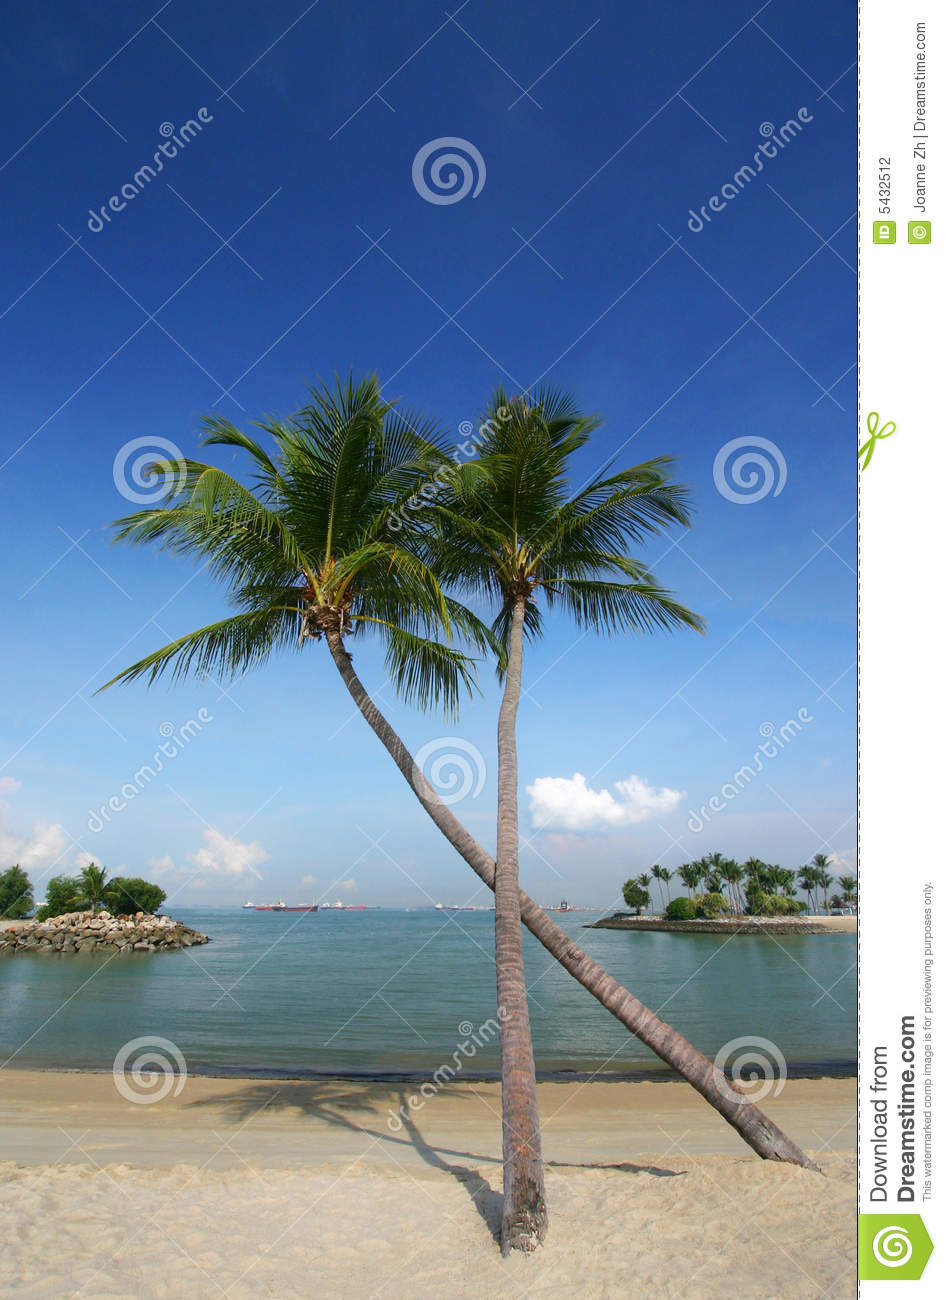 Coconut Palm Trees On Beach Stock Photo